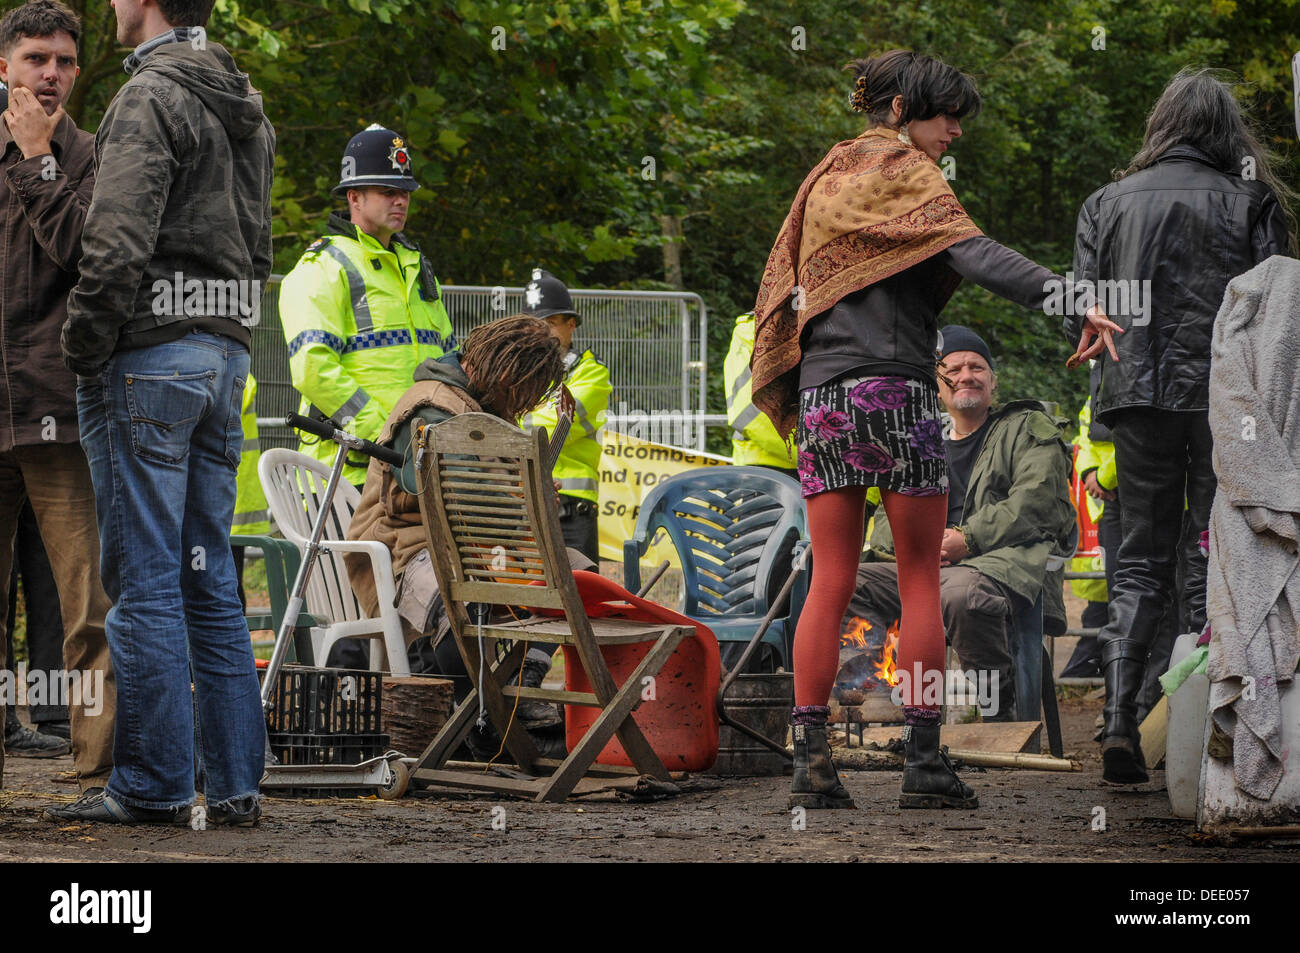 Balcombe,West Sussex, UK. 16th Sept, 2013. Relaxed atmosphere at Cuadrilla site entrance as Natalie Hynde brightens the scene .Environmentalists rejoiced after todays failed attempt by West Sussex County  in the high court, due flawed case, to evict them from the road side camp. The anti fracking environmentalists are protesting against test drilling by Cuadrilla on the site in West Sussex that could lead to the controversial fracking process. © David Burr/Alamy Live News - Stock Image